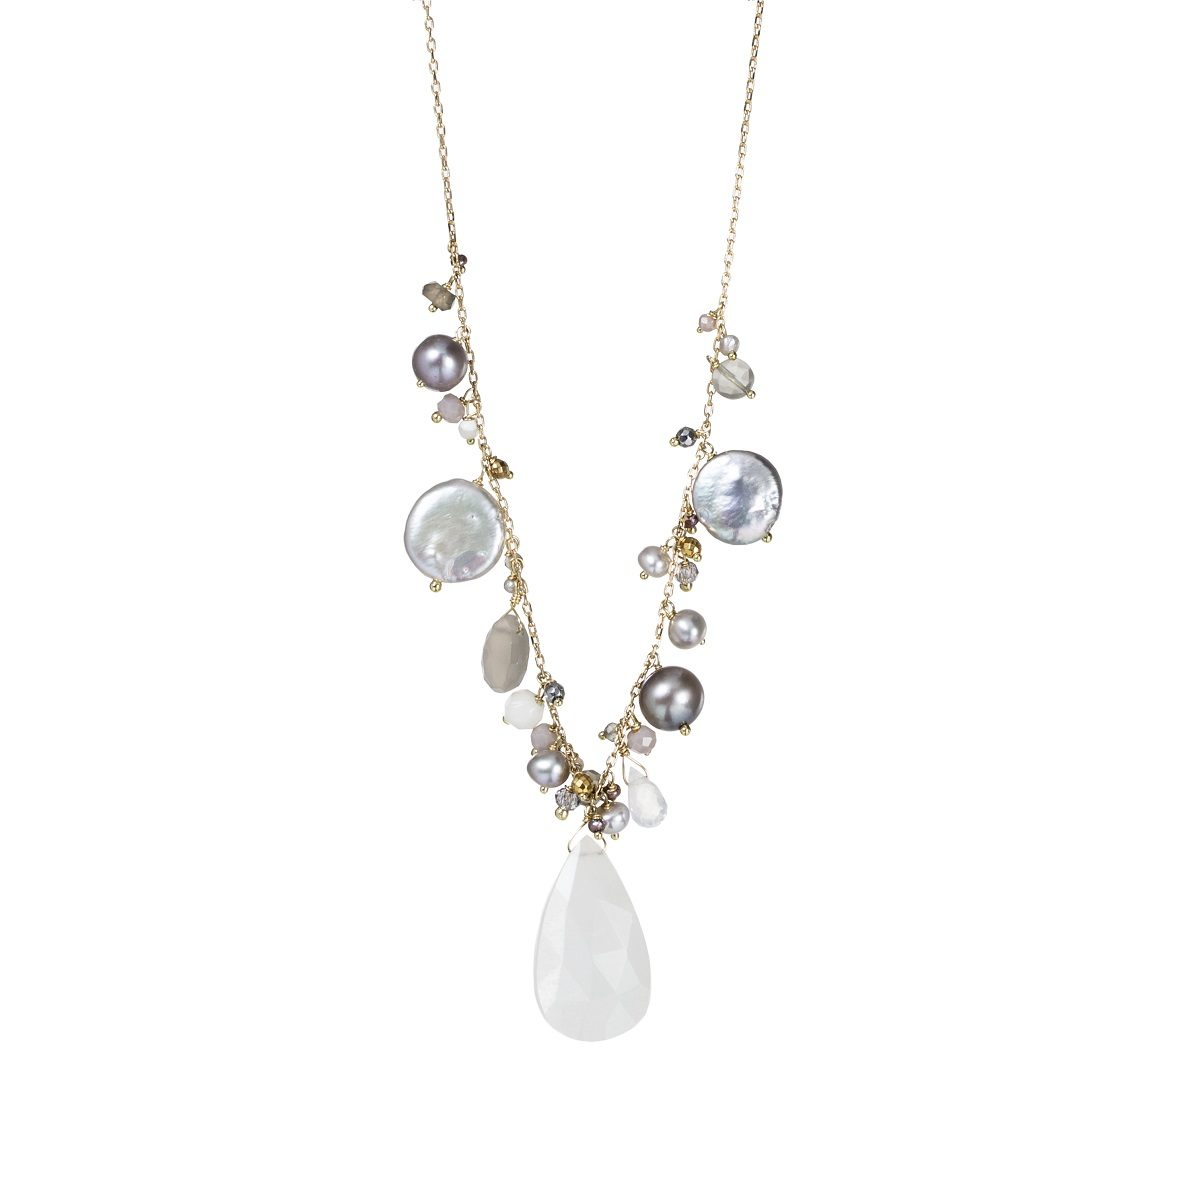 swp_necklace_67_182